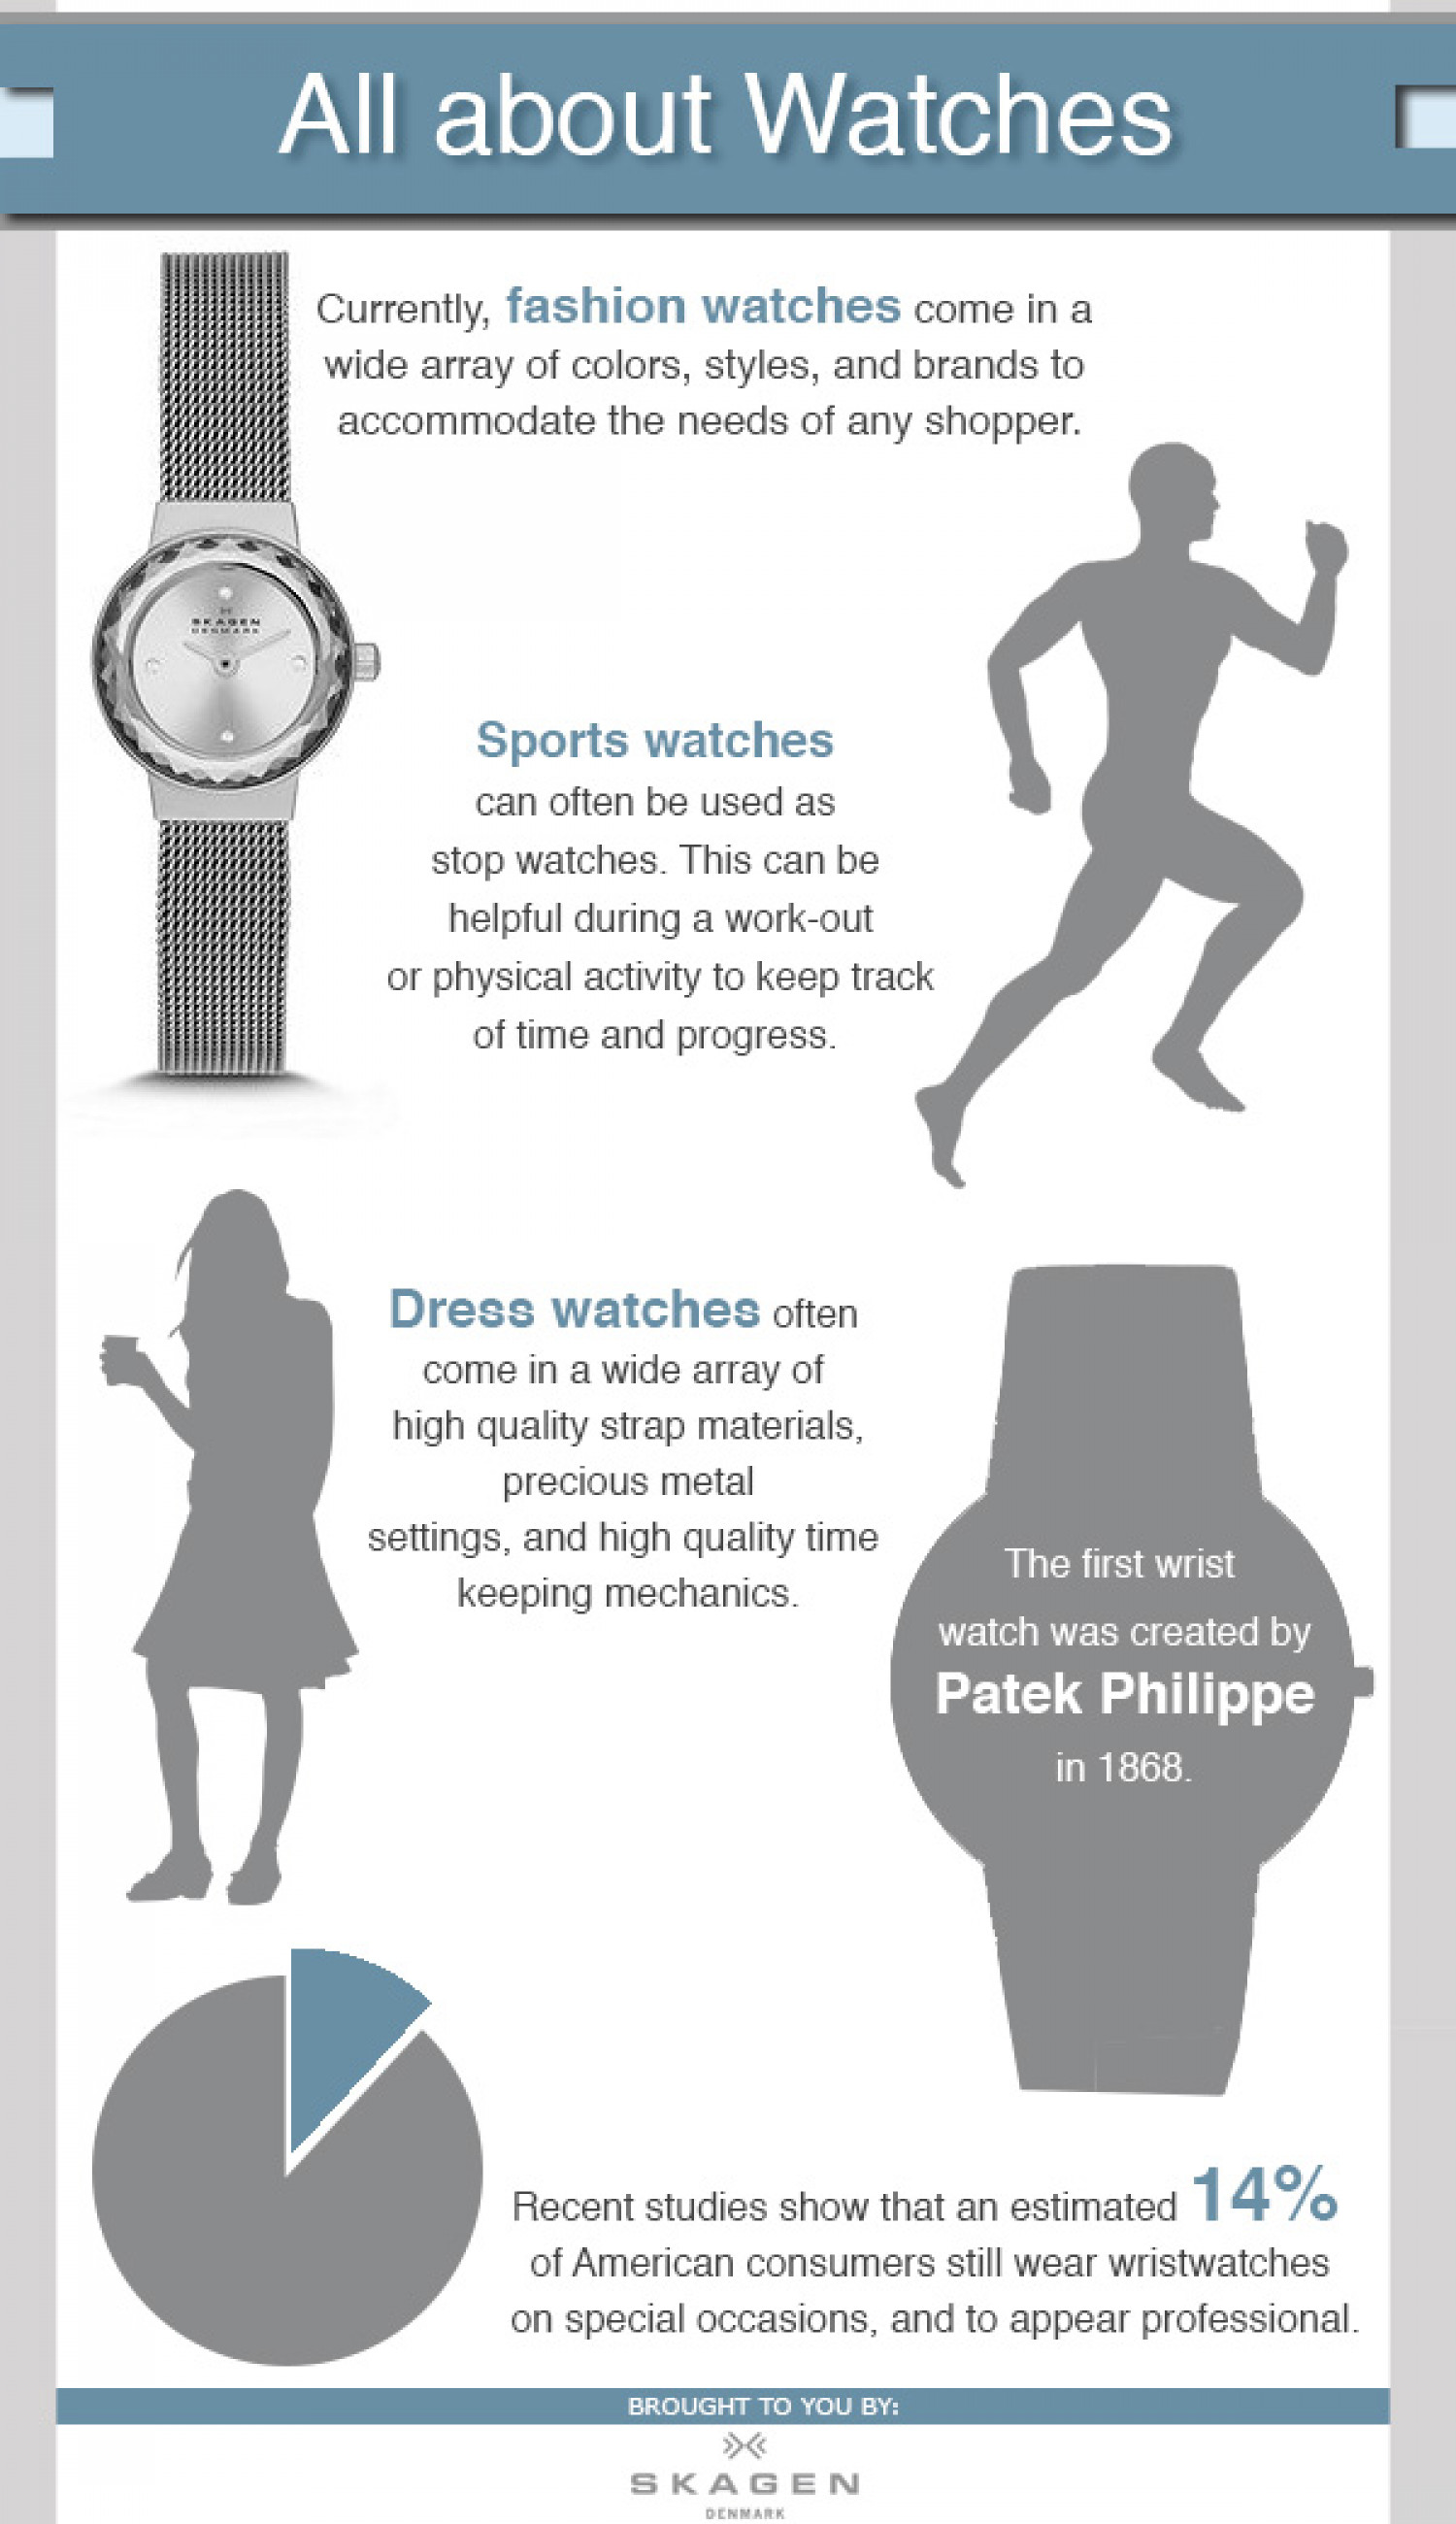 All about Watches Infographic